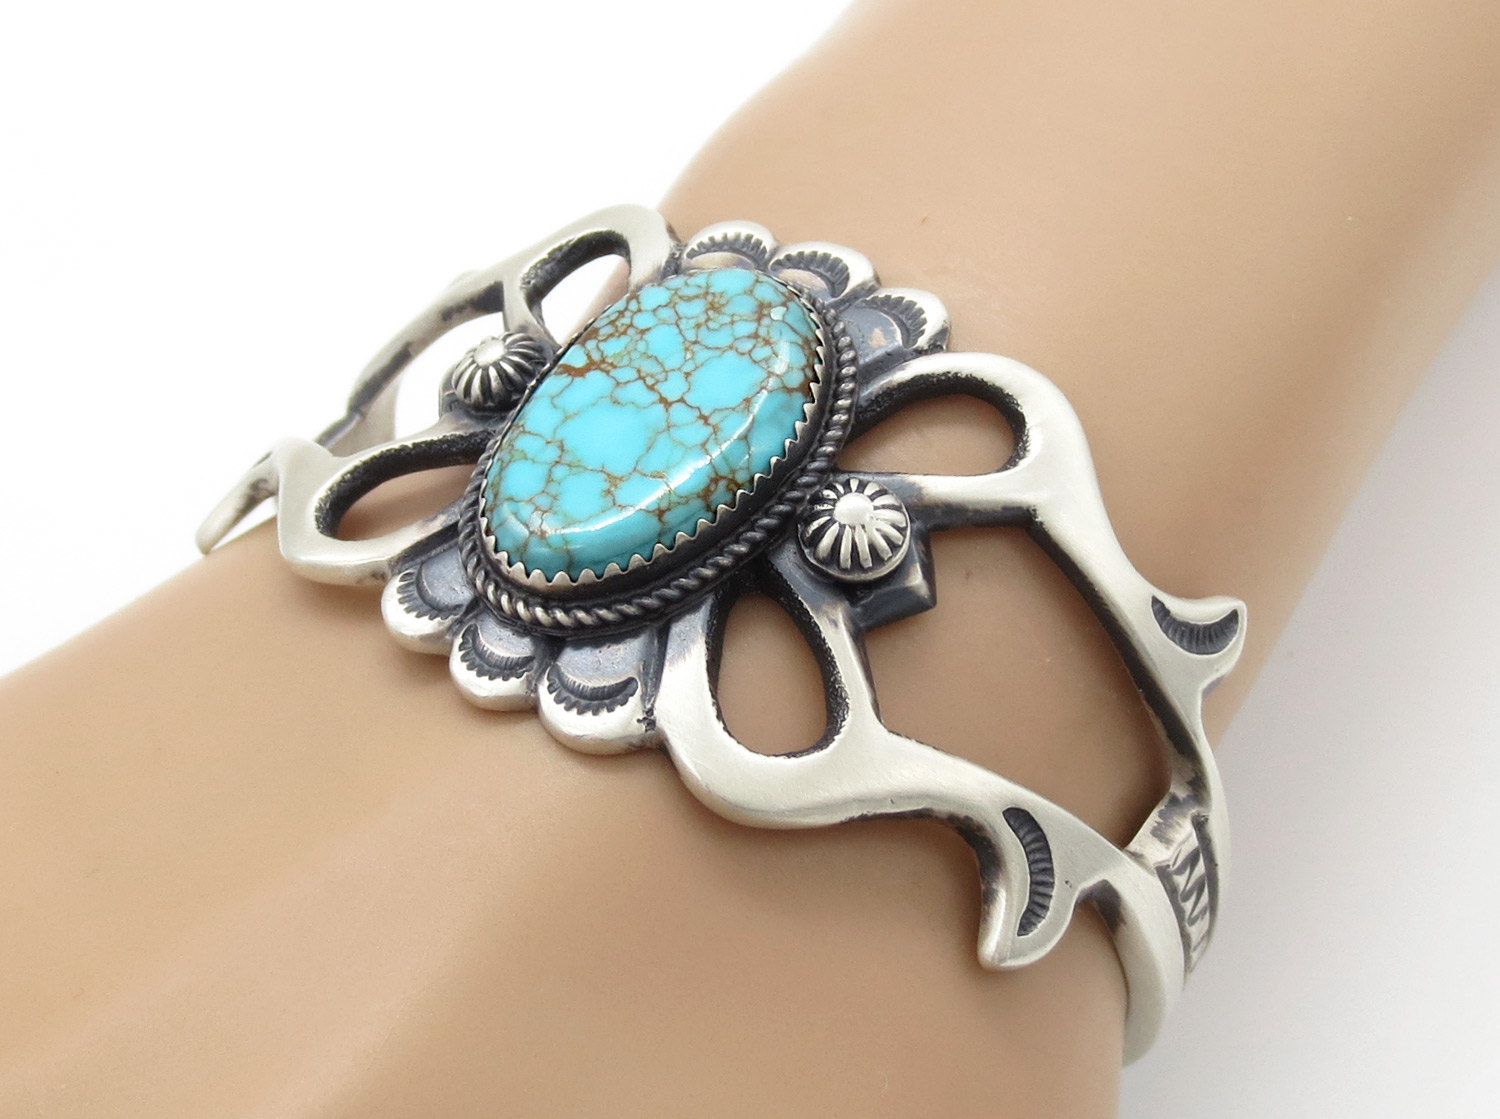 Turquoise & Sterling Silver Bracelet Native American Jewelry - 2149dt